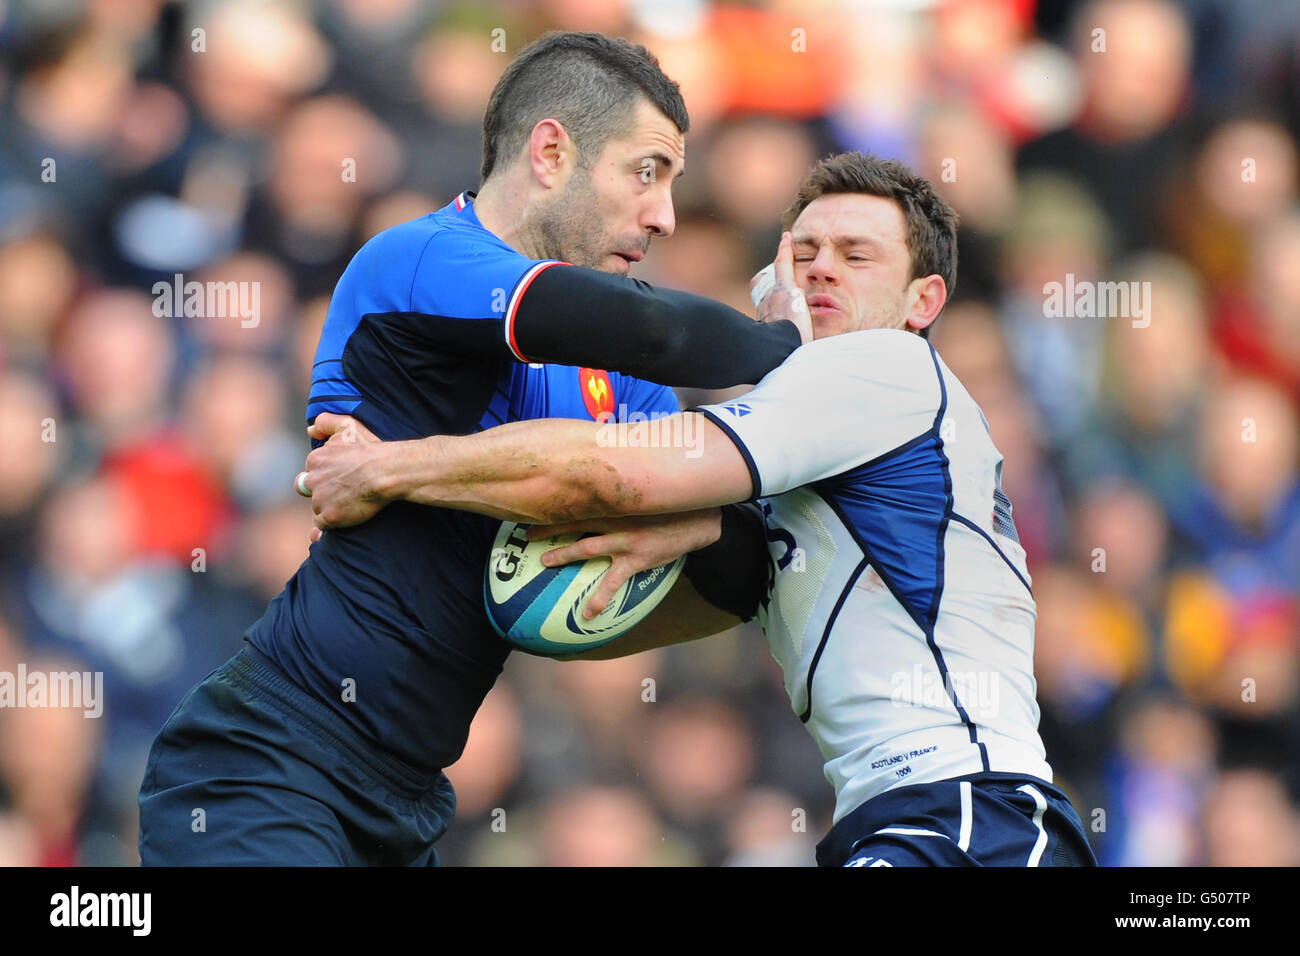 Rugby Union - RBS 6 Nations Championship 2012 - Scotland v France - Murrayfield - Stock Image